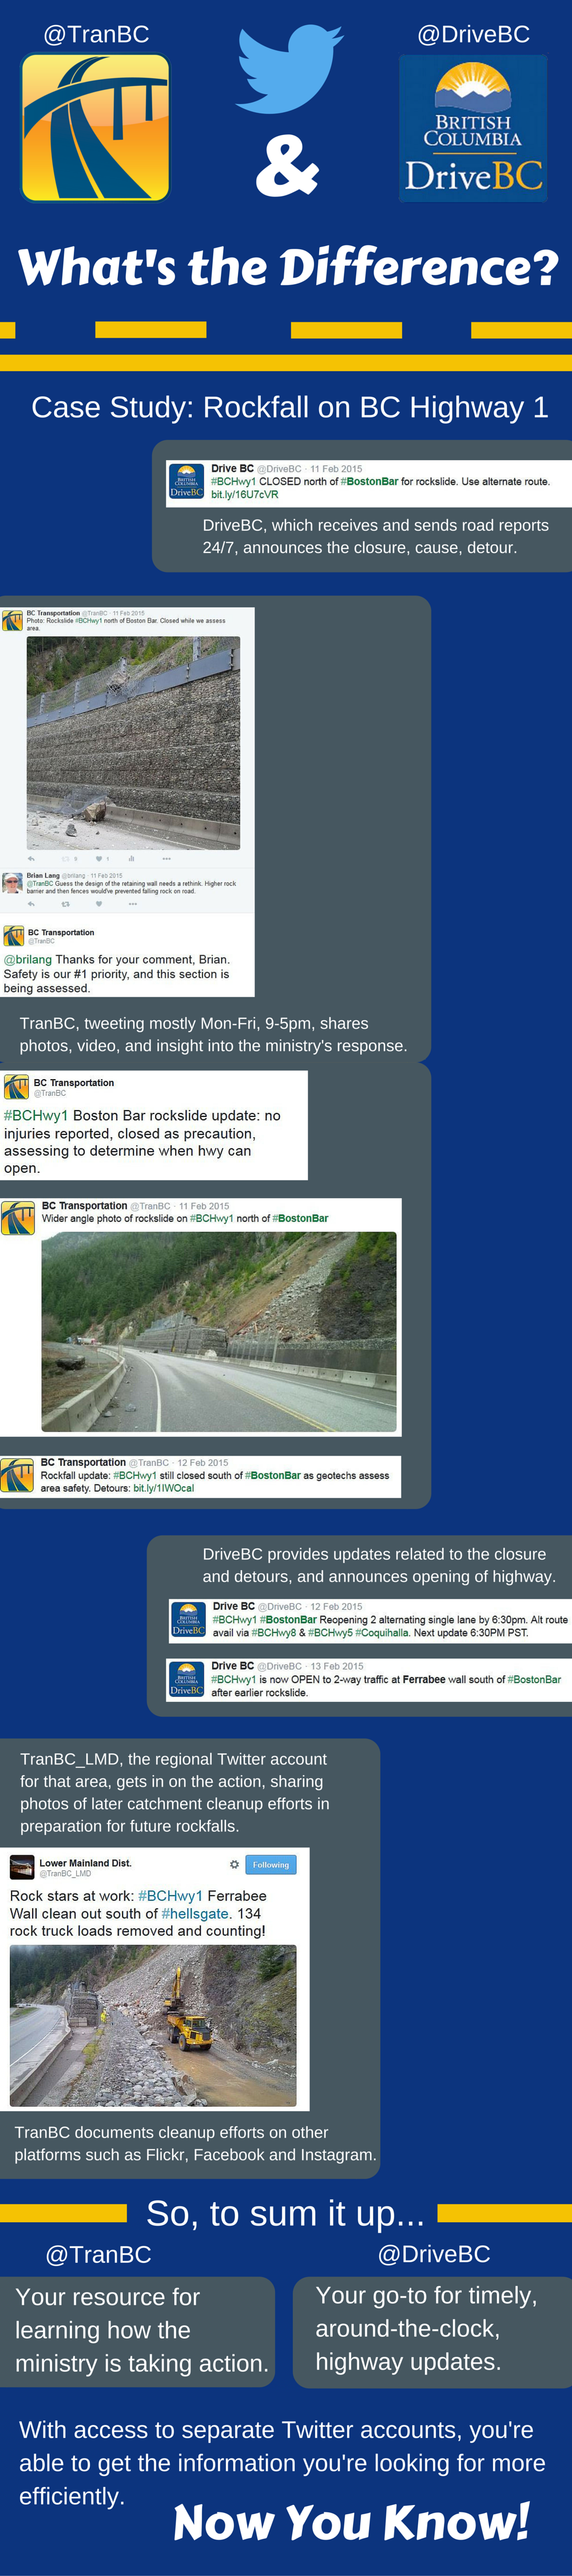 infographic with tweets from DriveBC and TranBC